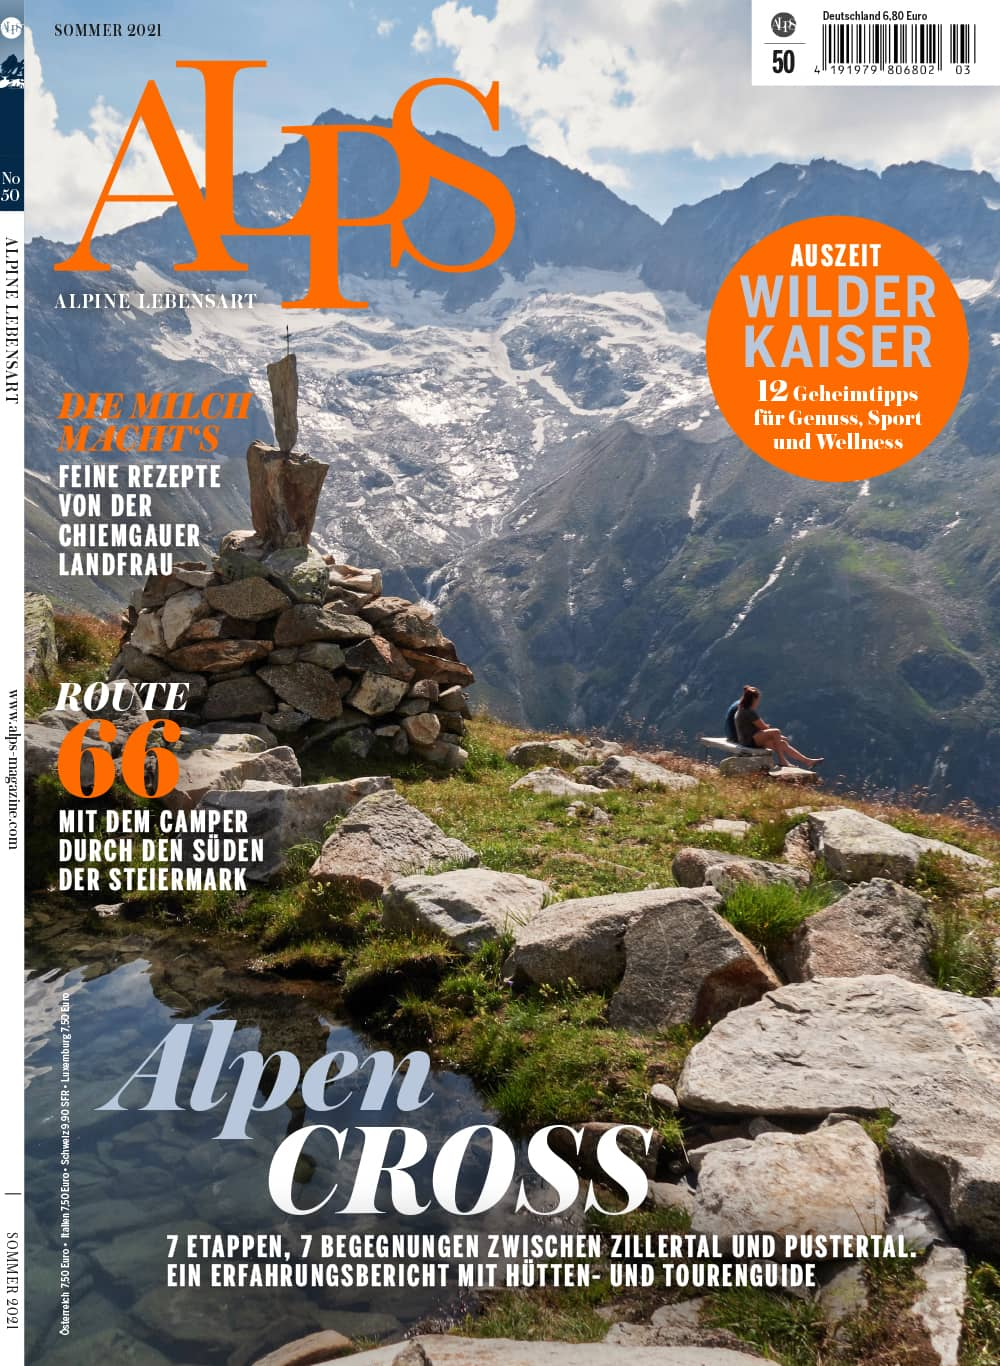 ALPS #50 / Sommer 2021 / Cover